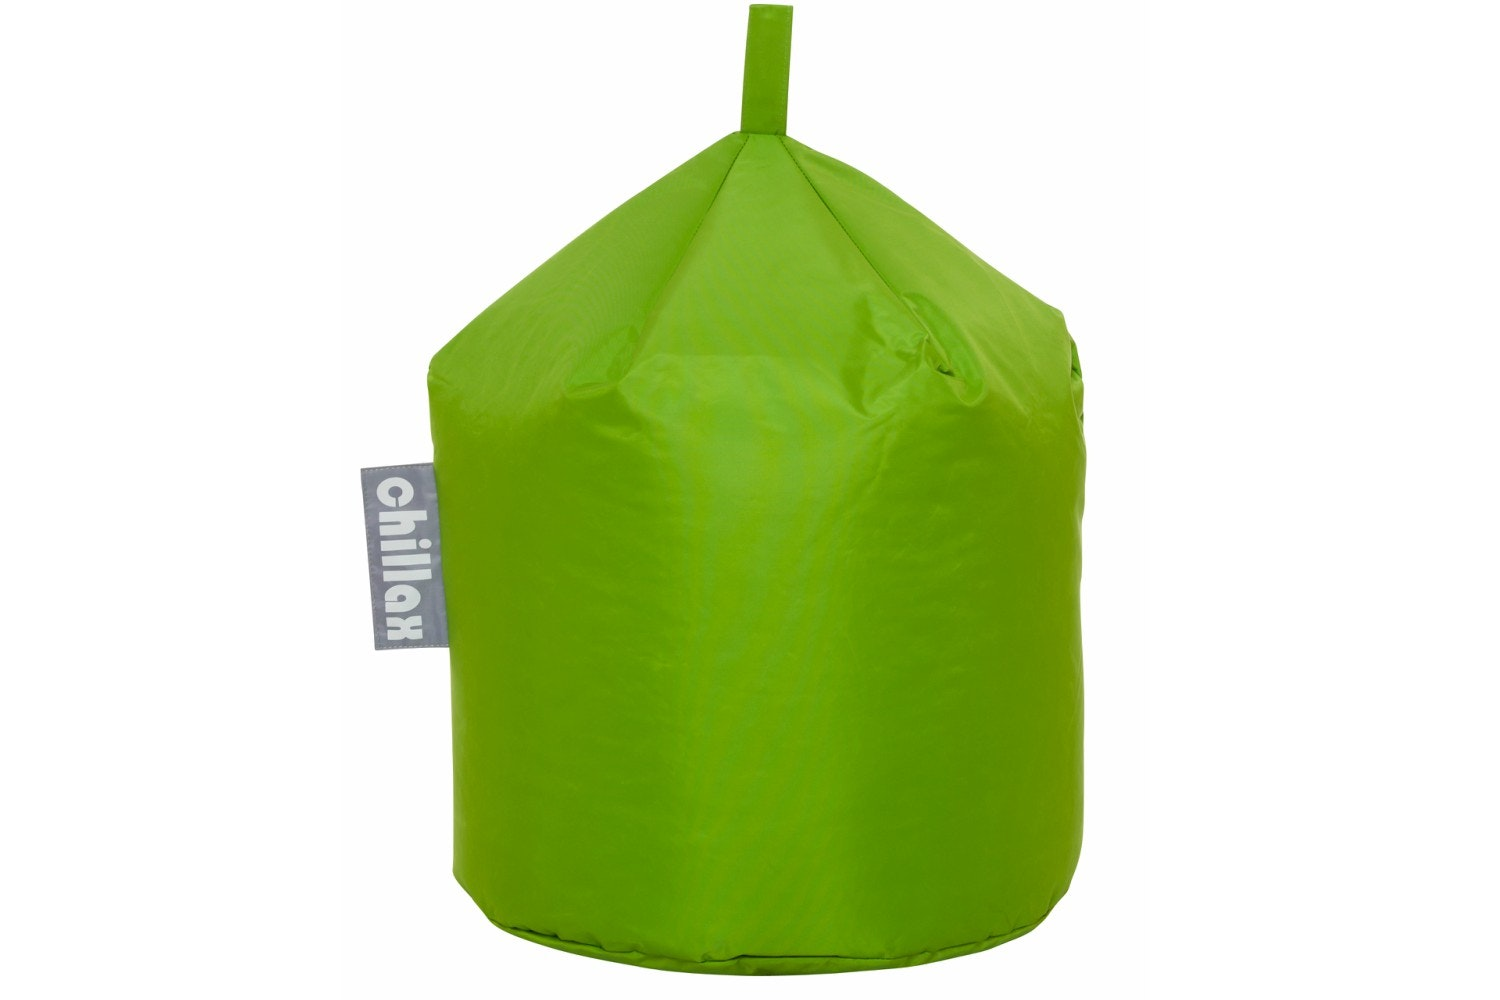 Chillax Round Bean Bag | Lime